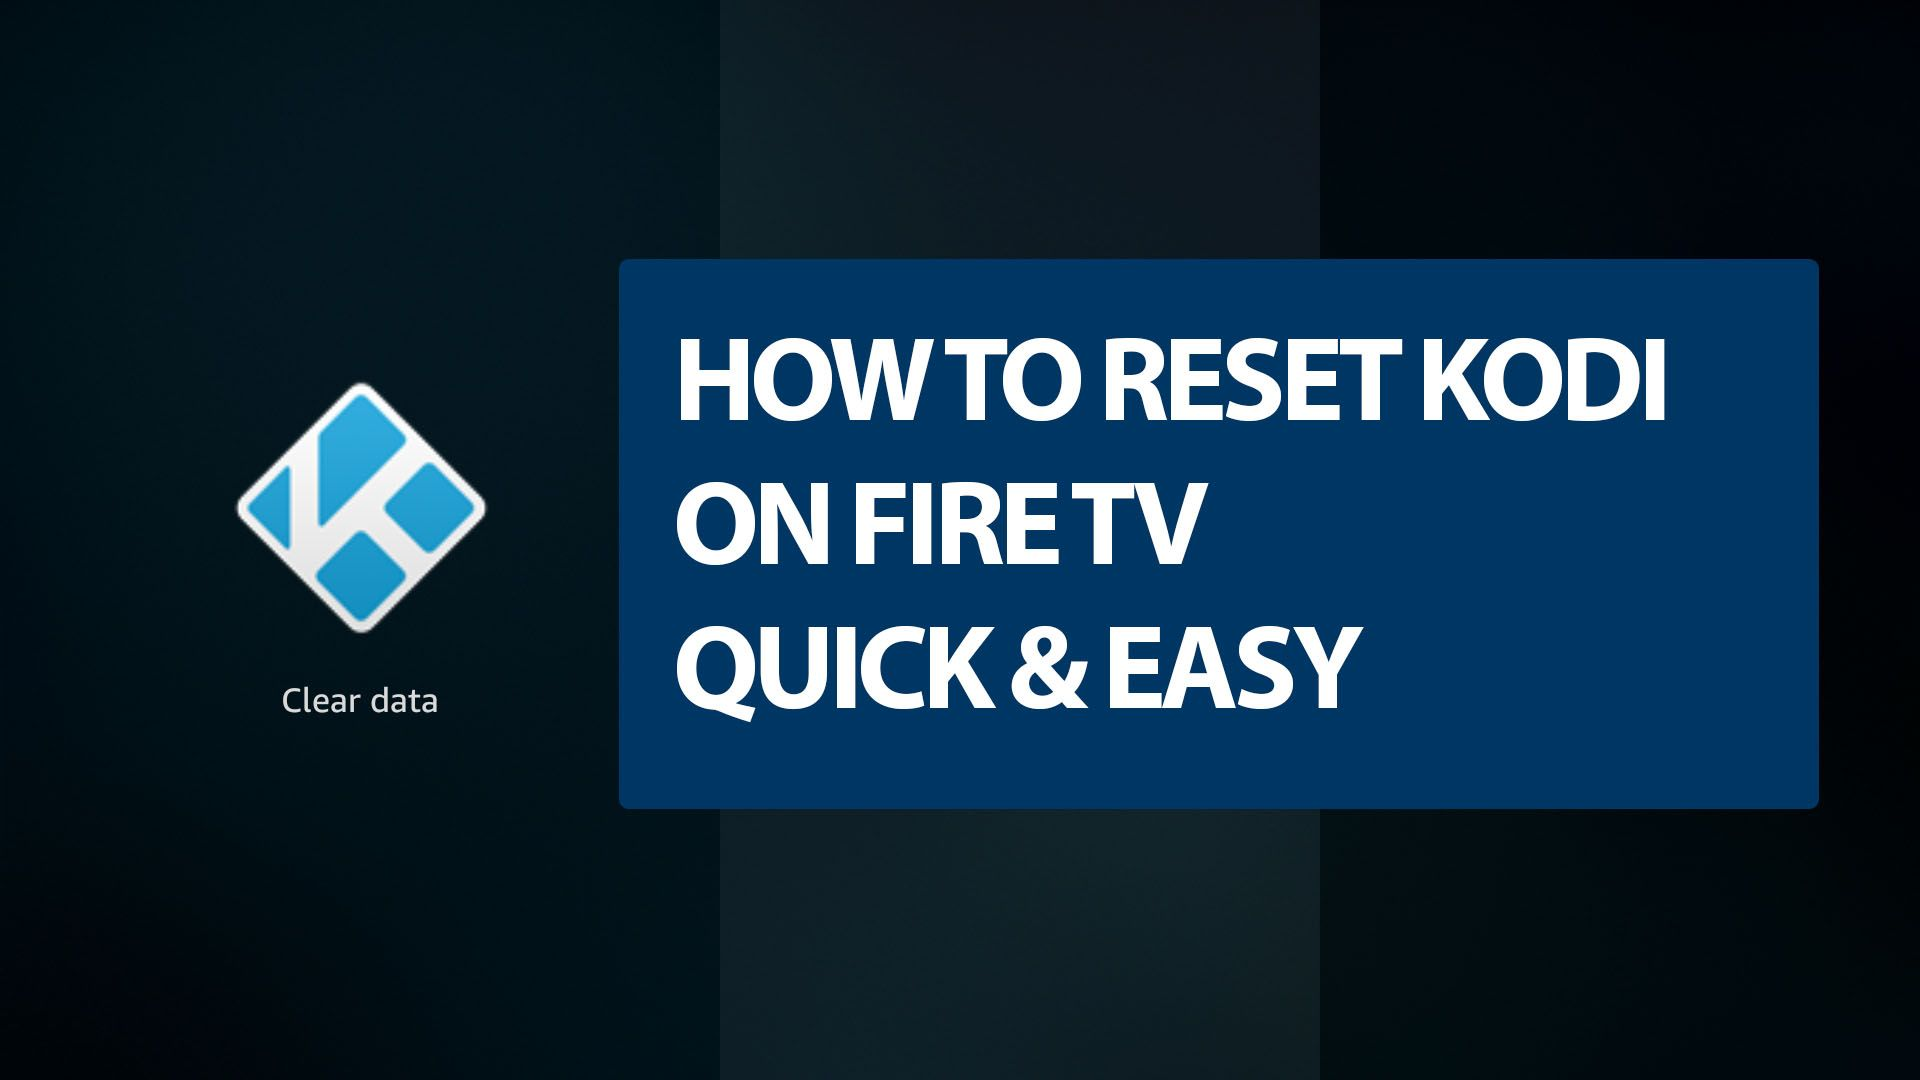 How to Reset Kodi on Firestick or Fire TV, Quick and Easy